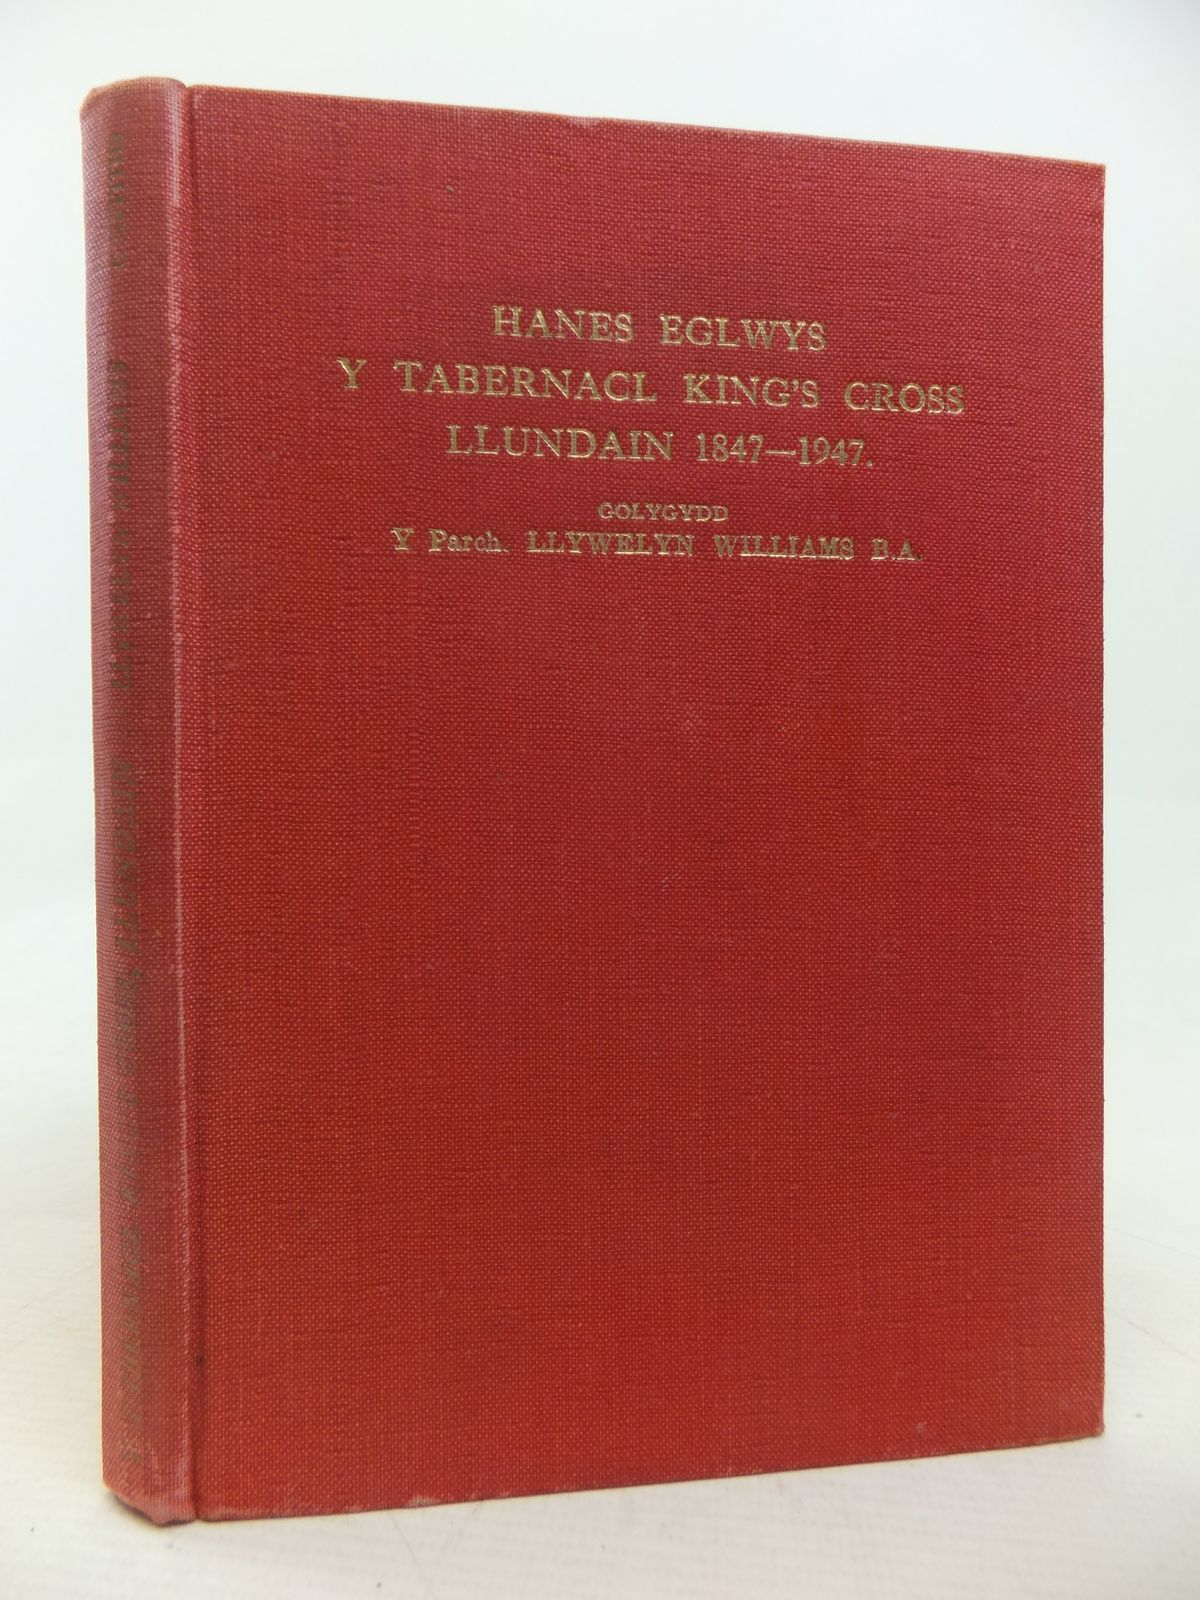 Photo of HANES EGLWYS Y TABERNACL KING'S CROSS, LLUNDAIN 1847-1947 written by Williams, Llywelyn published by W. Griffiths A'i Frodyr (STOCK CODE: 1809845)  for sale by Stella & Rose's Books